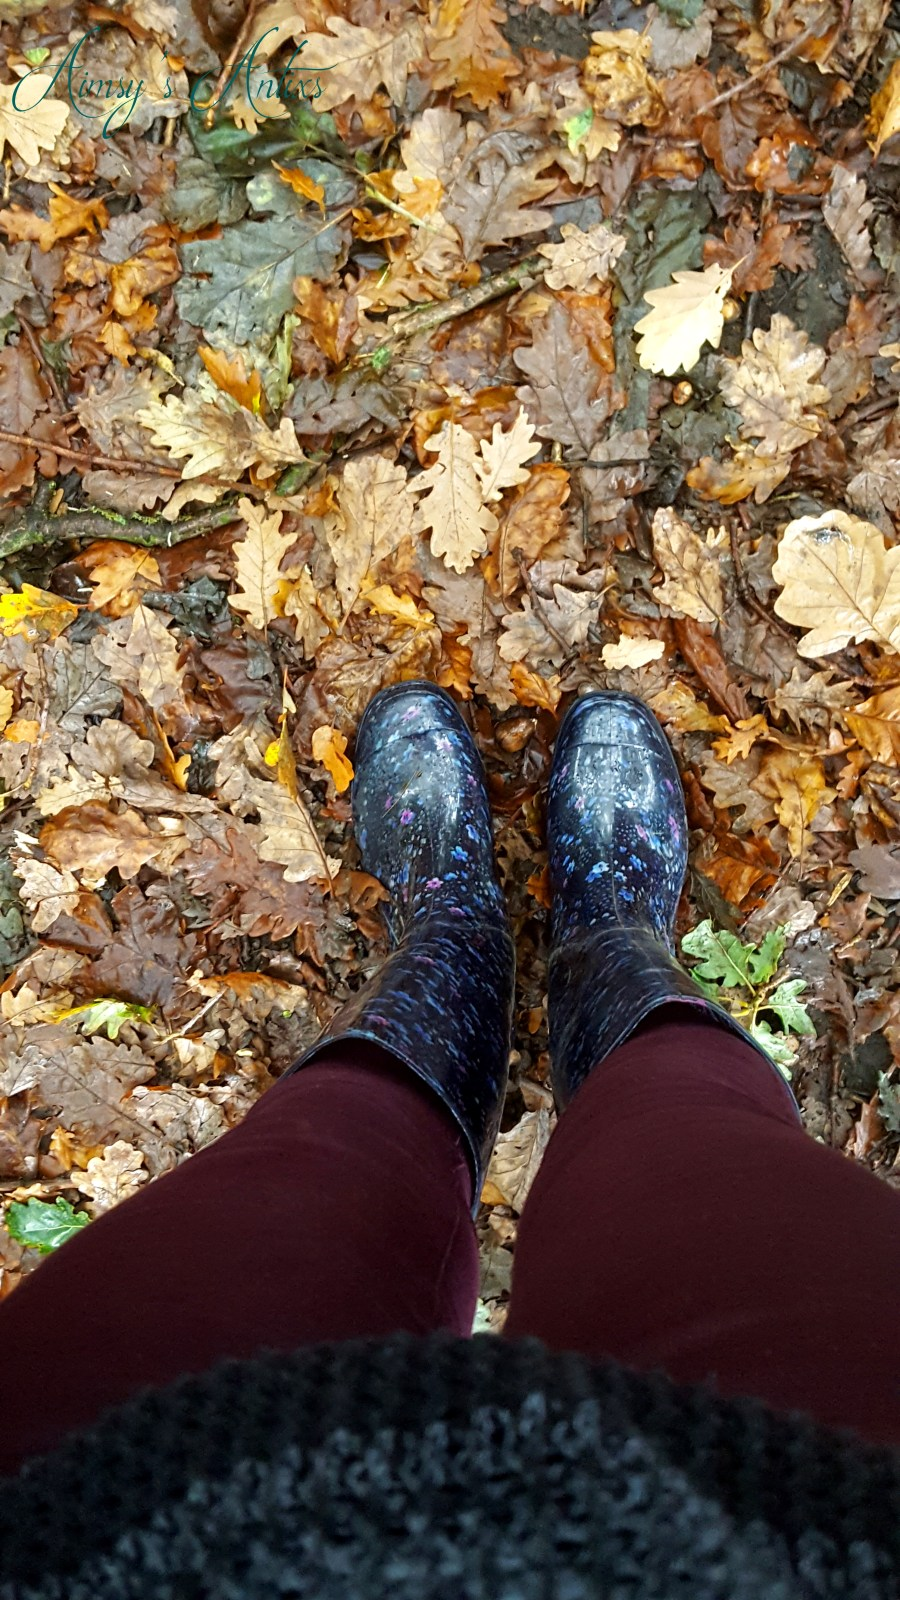 Image of view of woman's legs wearing purple / plum jeans and navy wellington boots, stood on autumn leaves